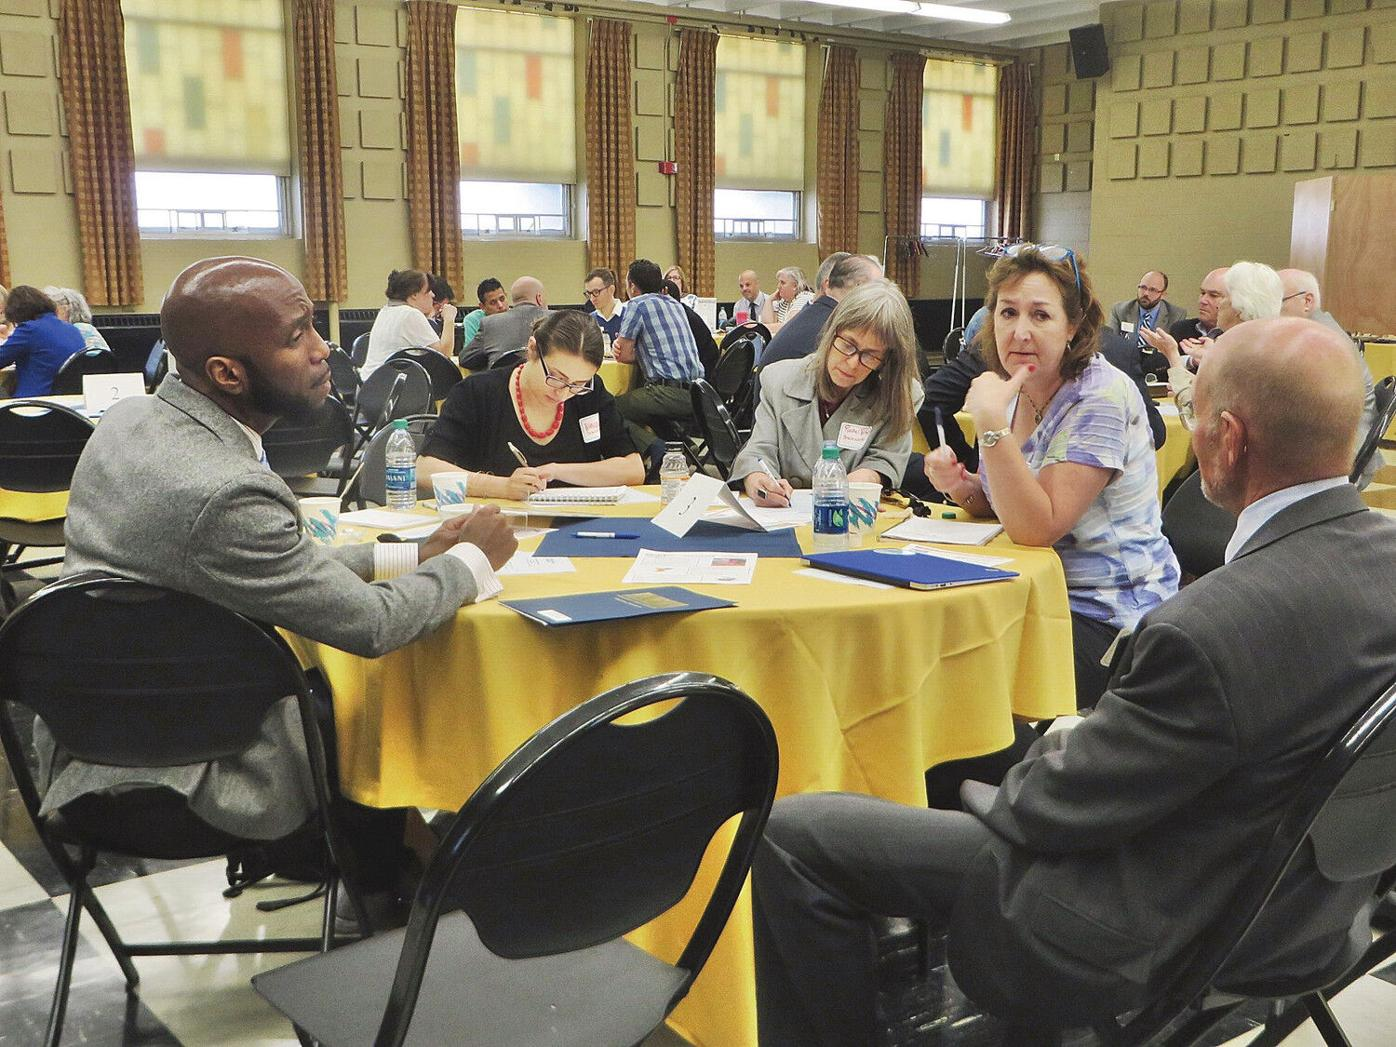 Berkshire Compact hears from state; sets local agenda for public pre-K through 12 programs